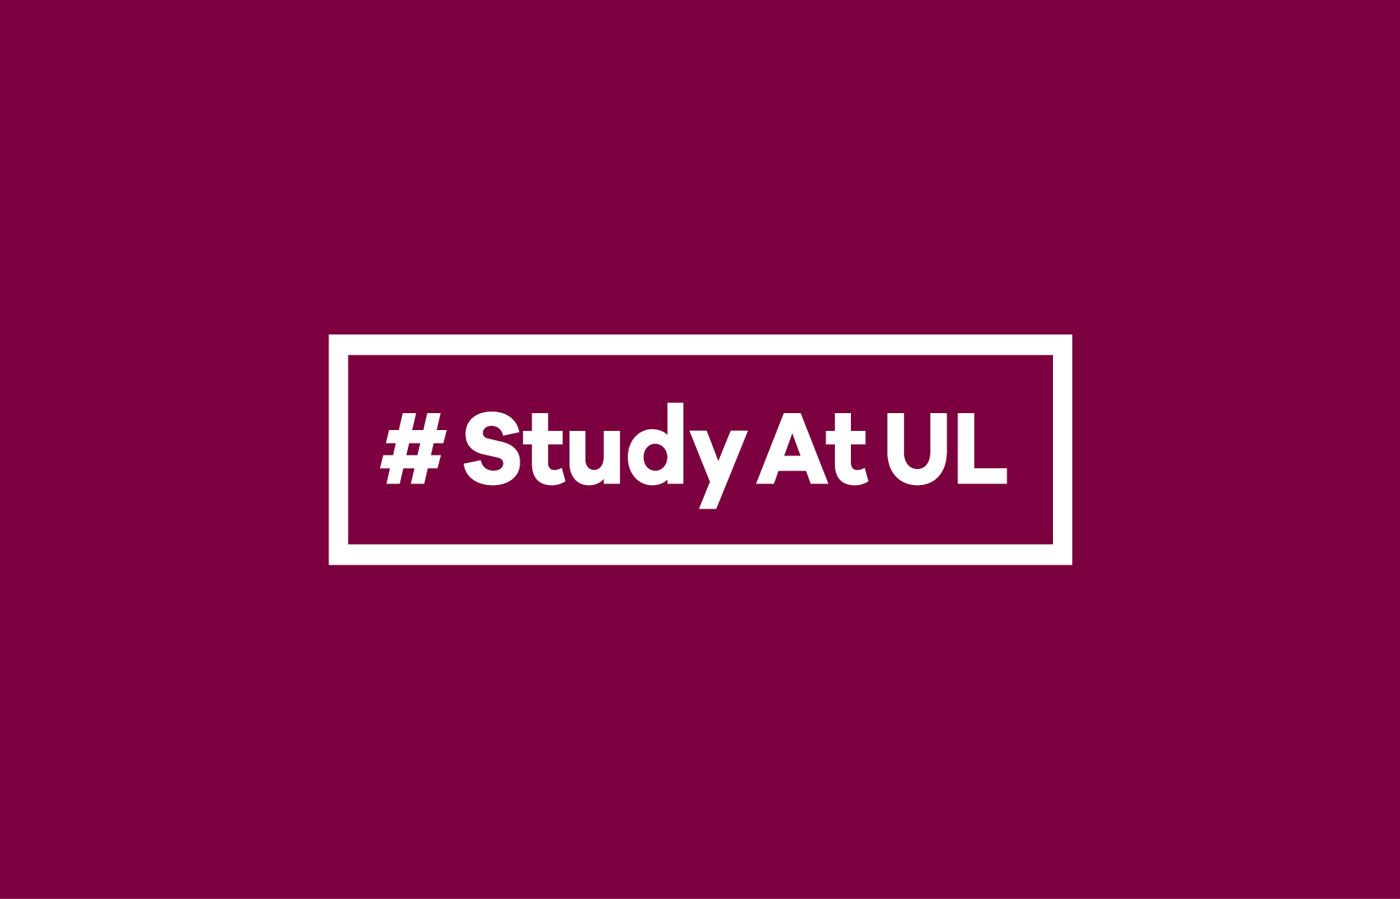 UL Bachelor of Arts campaign brand development featuring social media hashtag StudyatUL